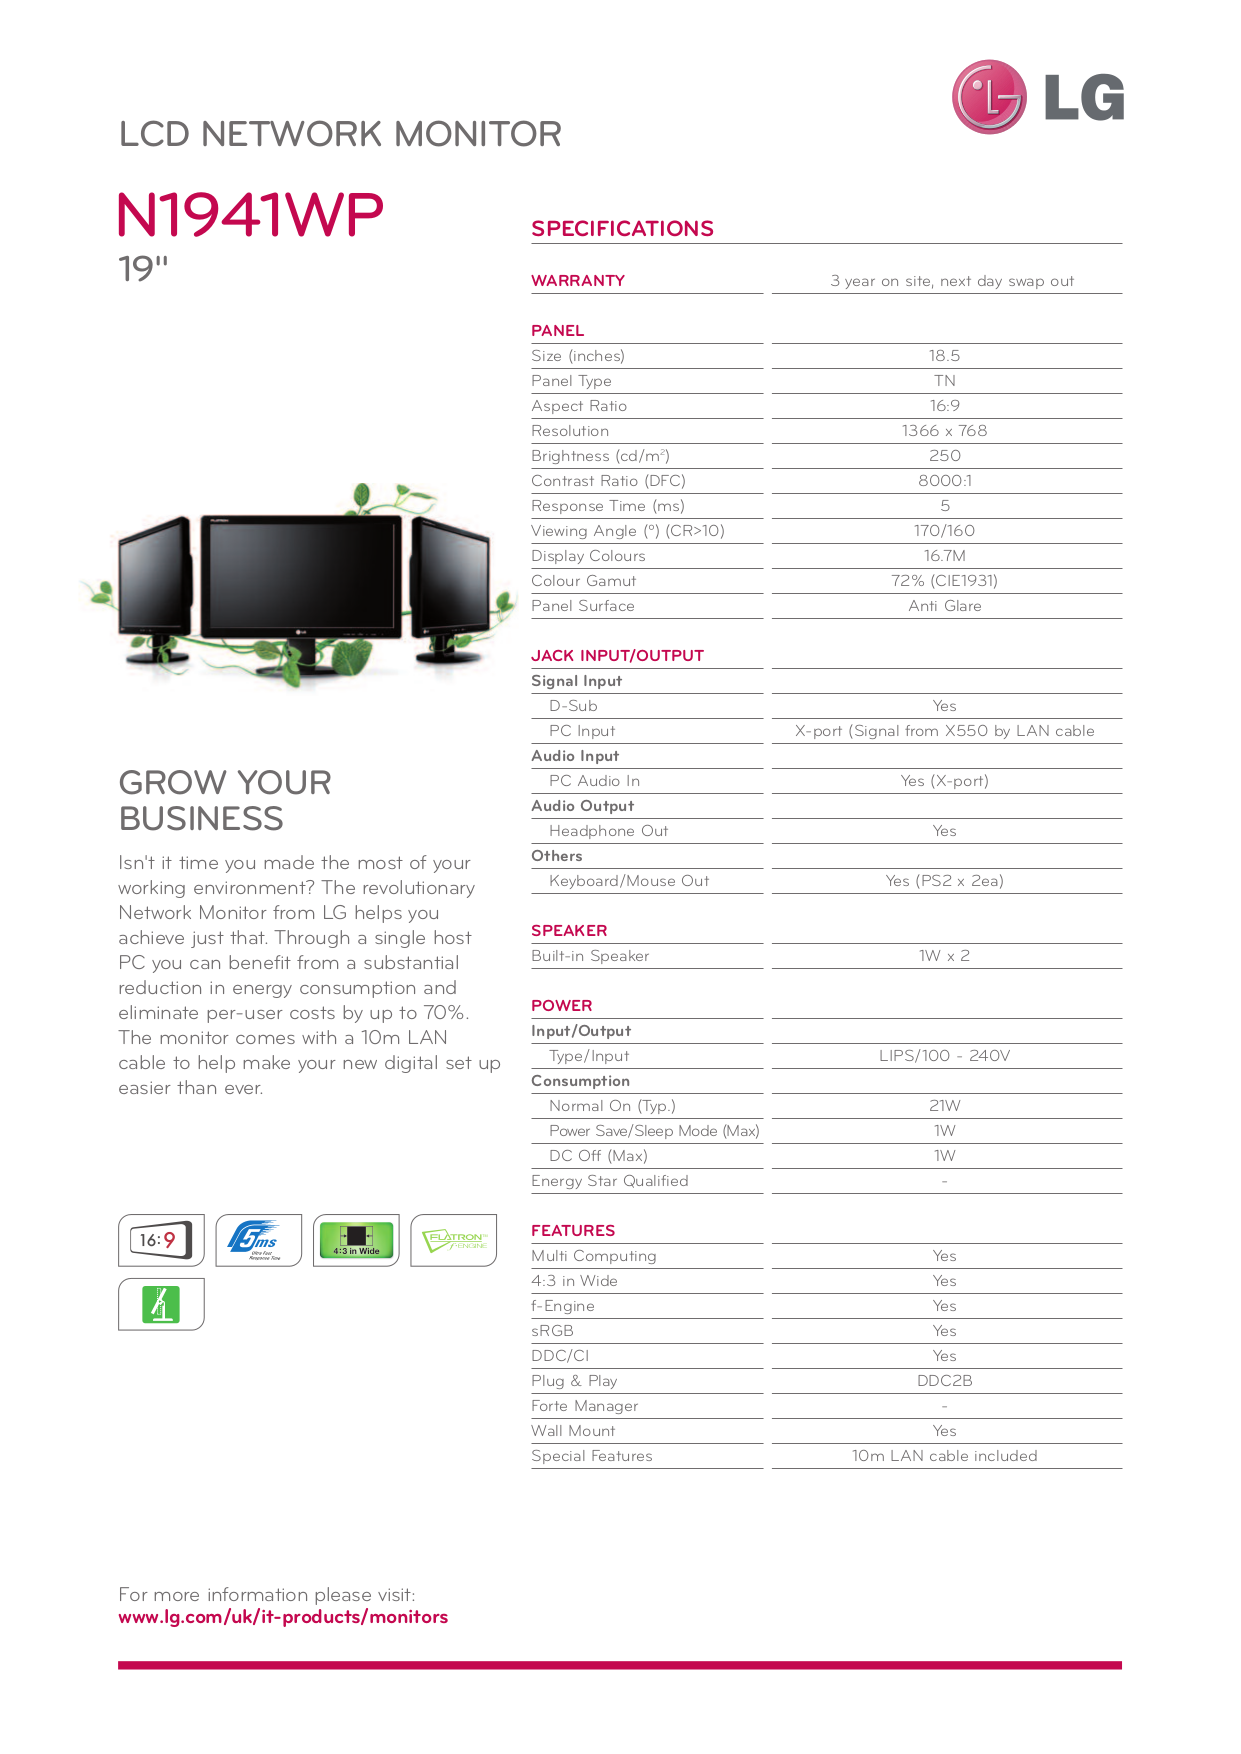 pdf for LG Monitor N1941WP manual